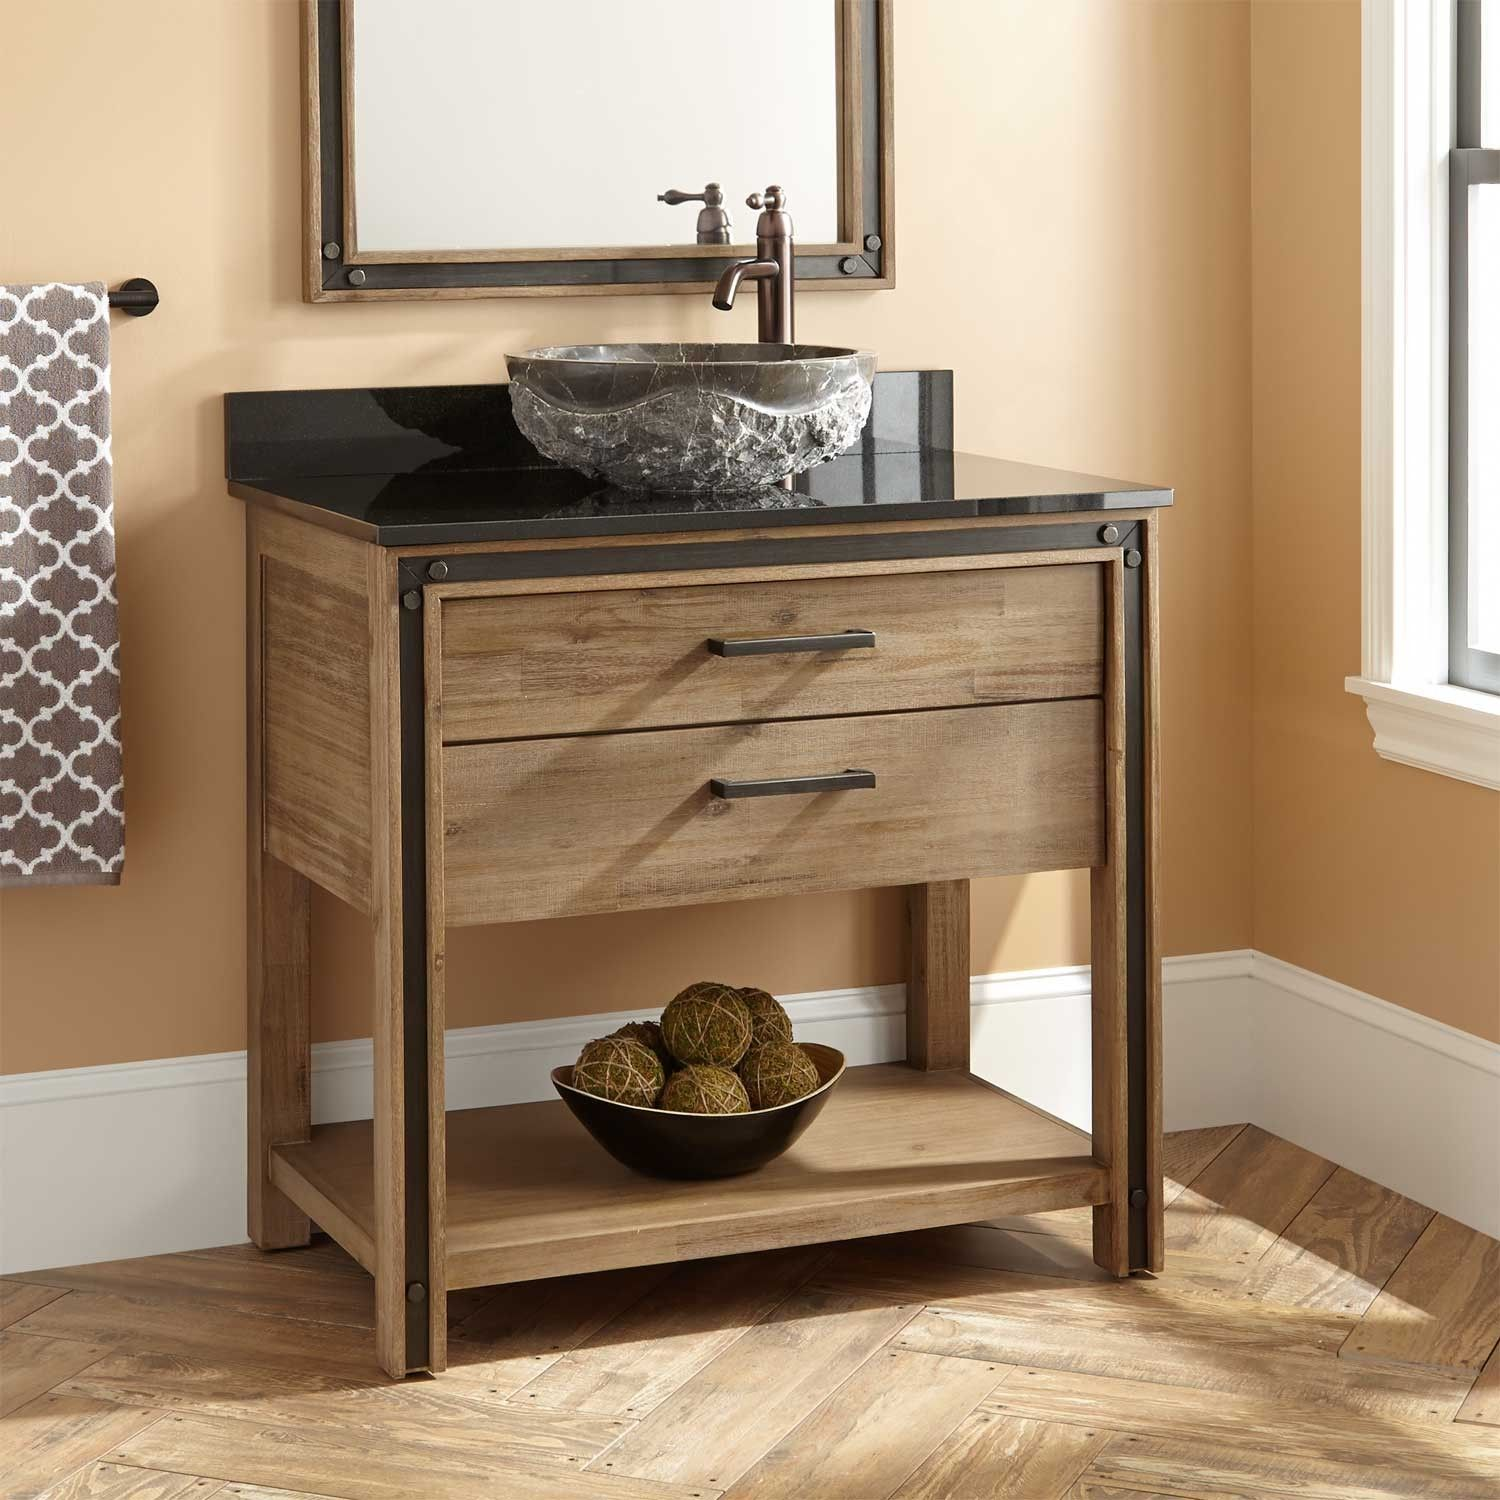 3 Furniture Items To Transform Into Bathroom Furniture Vanities In 2020 Bathroom Vanity Designs Rustic Bathroom Vanities Bathroom Sink Vanity